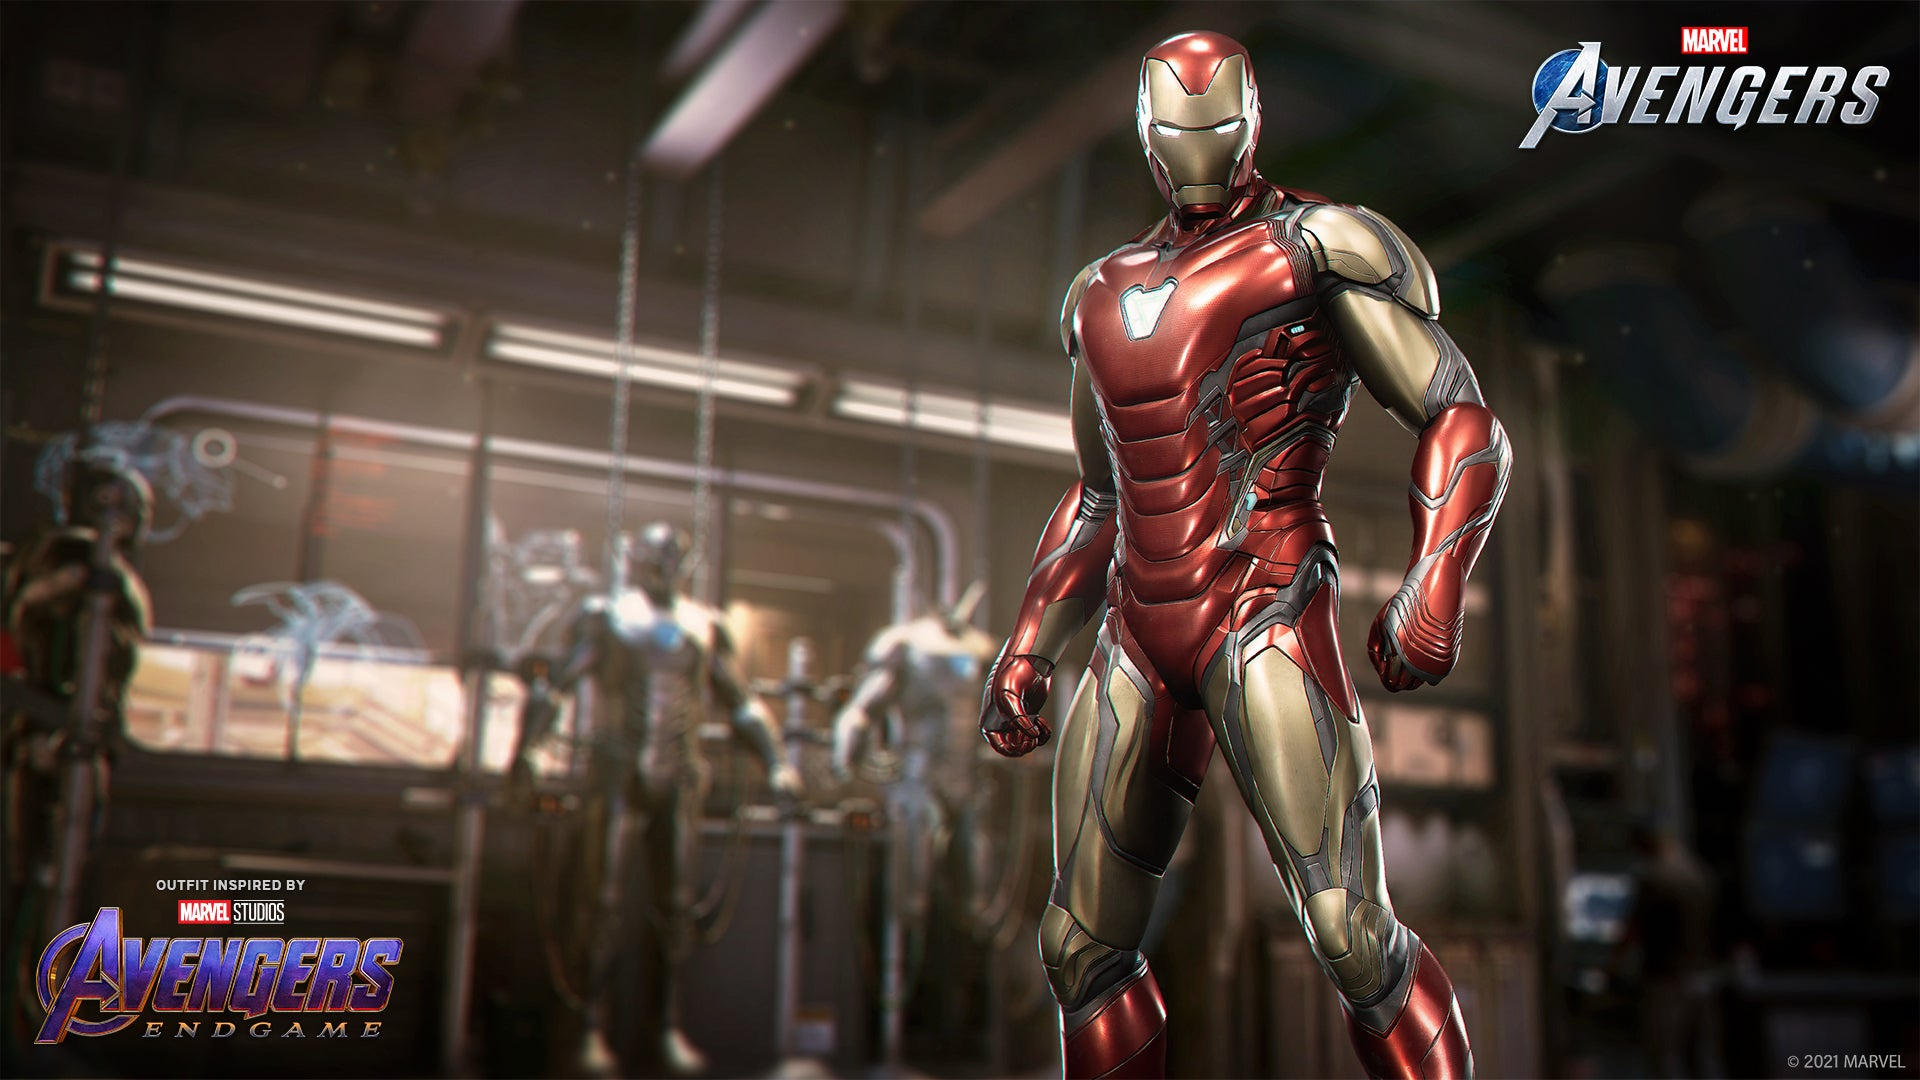 Iron Man in his Avengers: Endgame-inspired suit